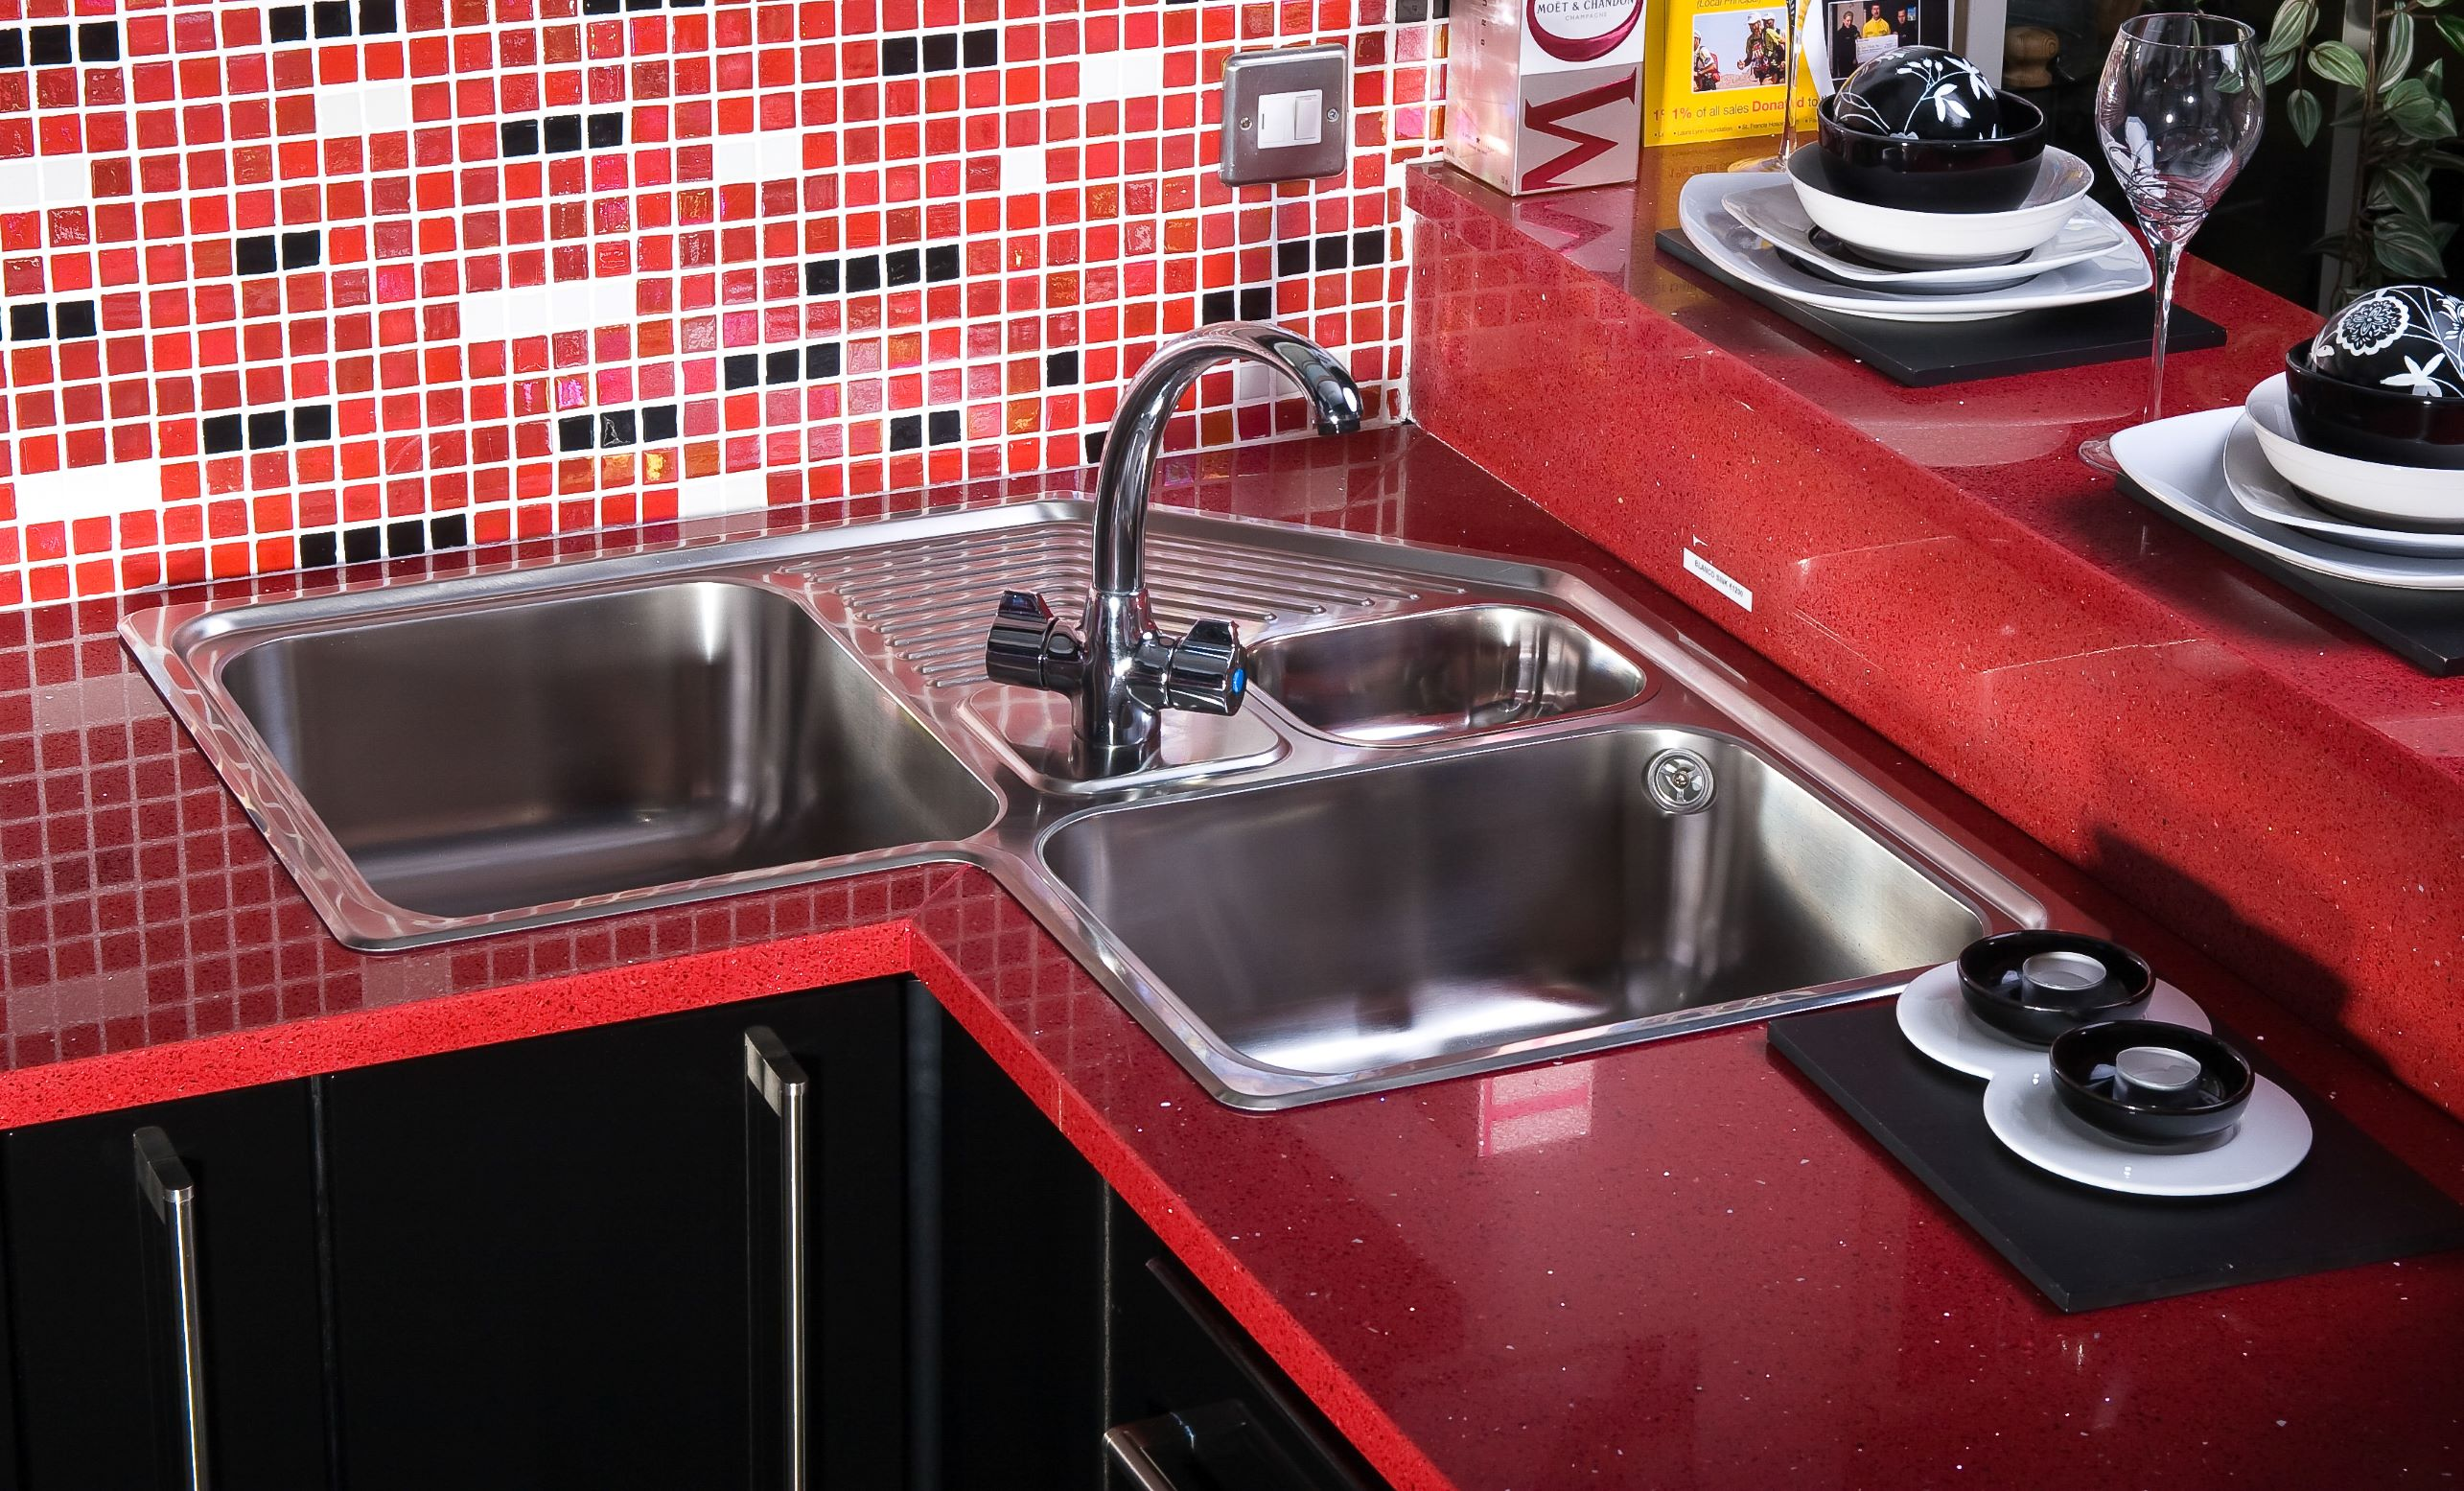 Looking for new kitchen countertop options and design ideas? Red kitchen countertops are certainly different and fun.